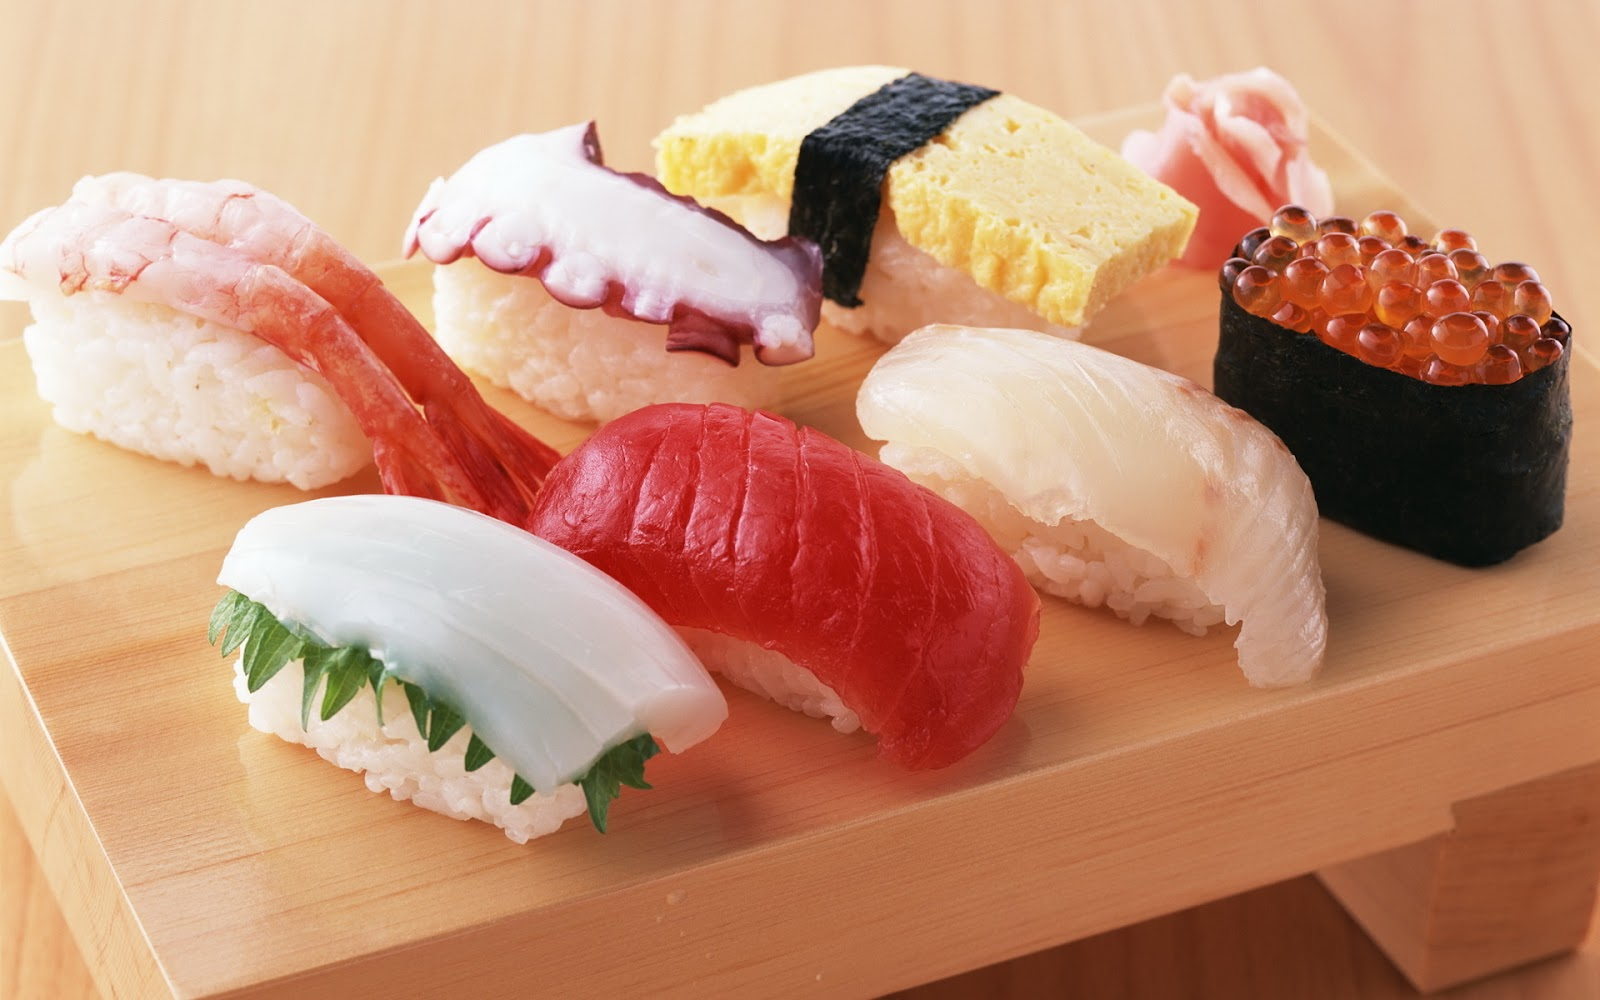 http://2.bp.blogspot.com/-maYCN6Yvx5E/T0Sylq_OWfI/AAAAAAAABxY/TZ-RRQevltA/s1600/food-japanese-food-seafood-sushi-sushi-shrimp-squid-red-caviar-rice-ginger.jpg